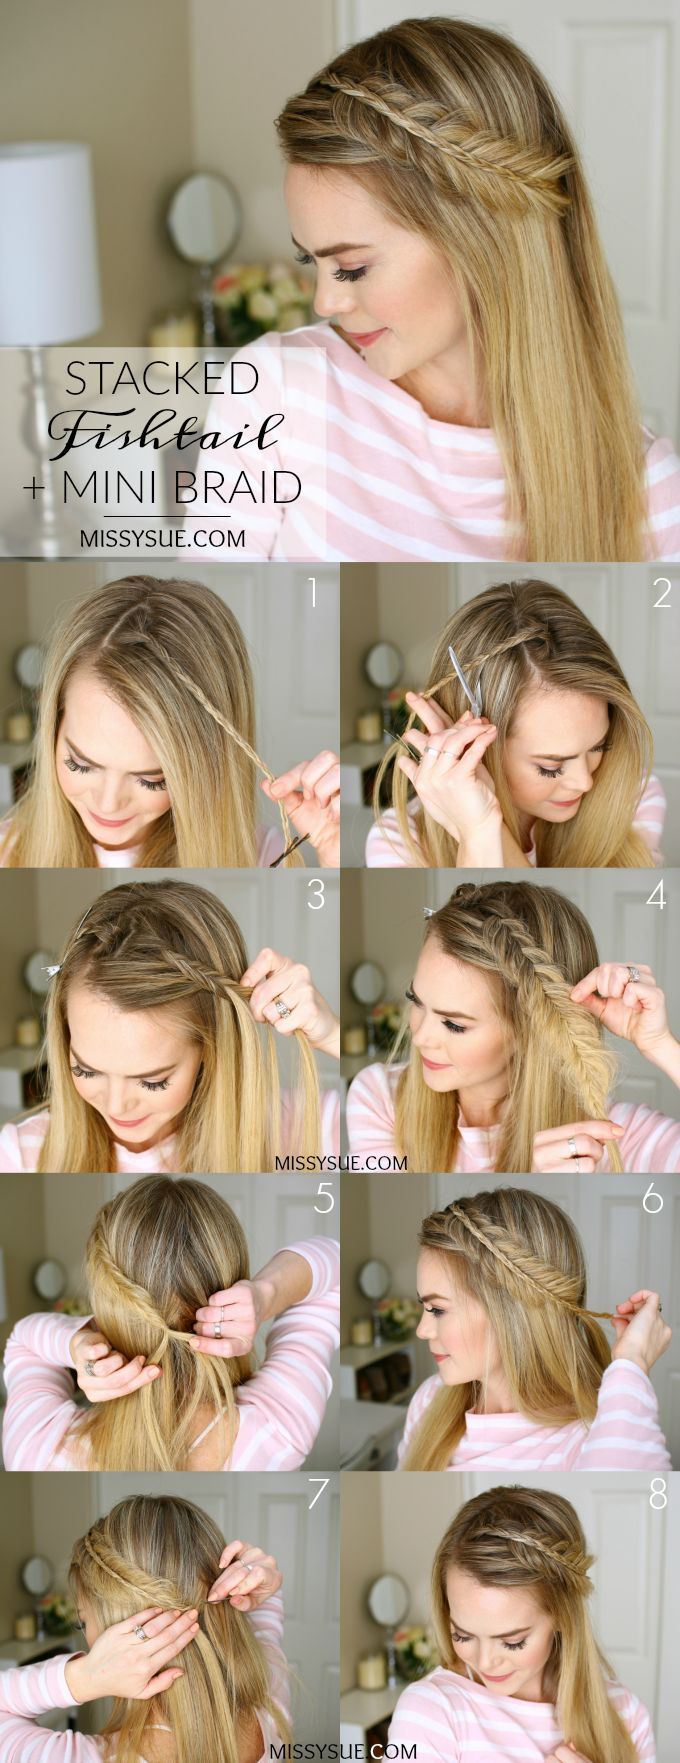 Stacked fishtail mini braid hairstyle tutorial / how to